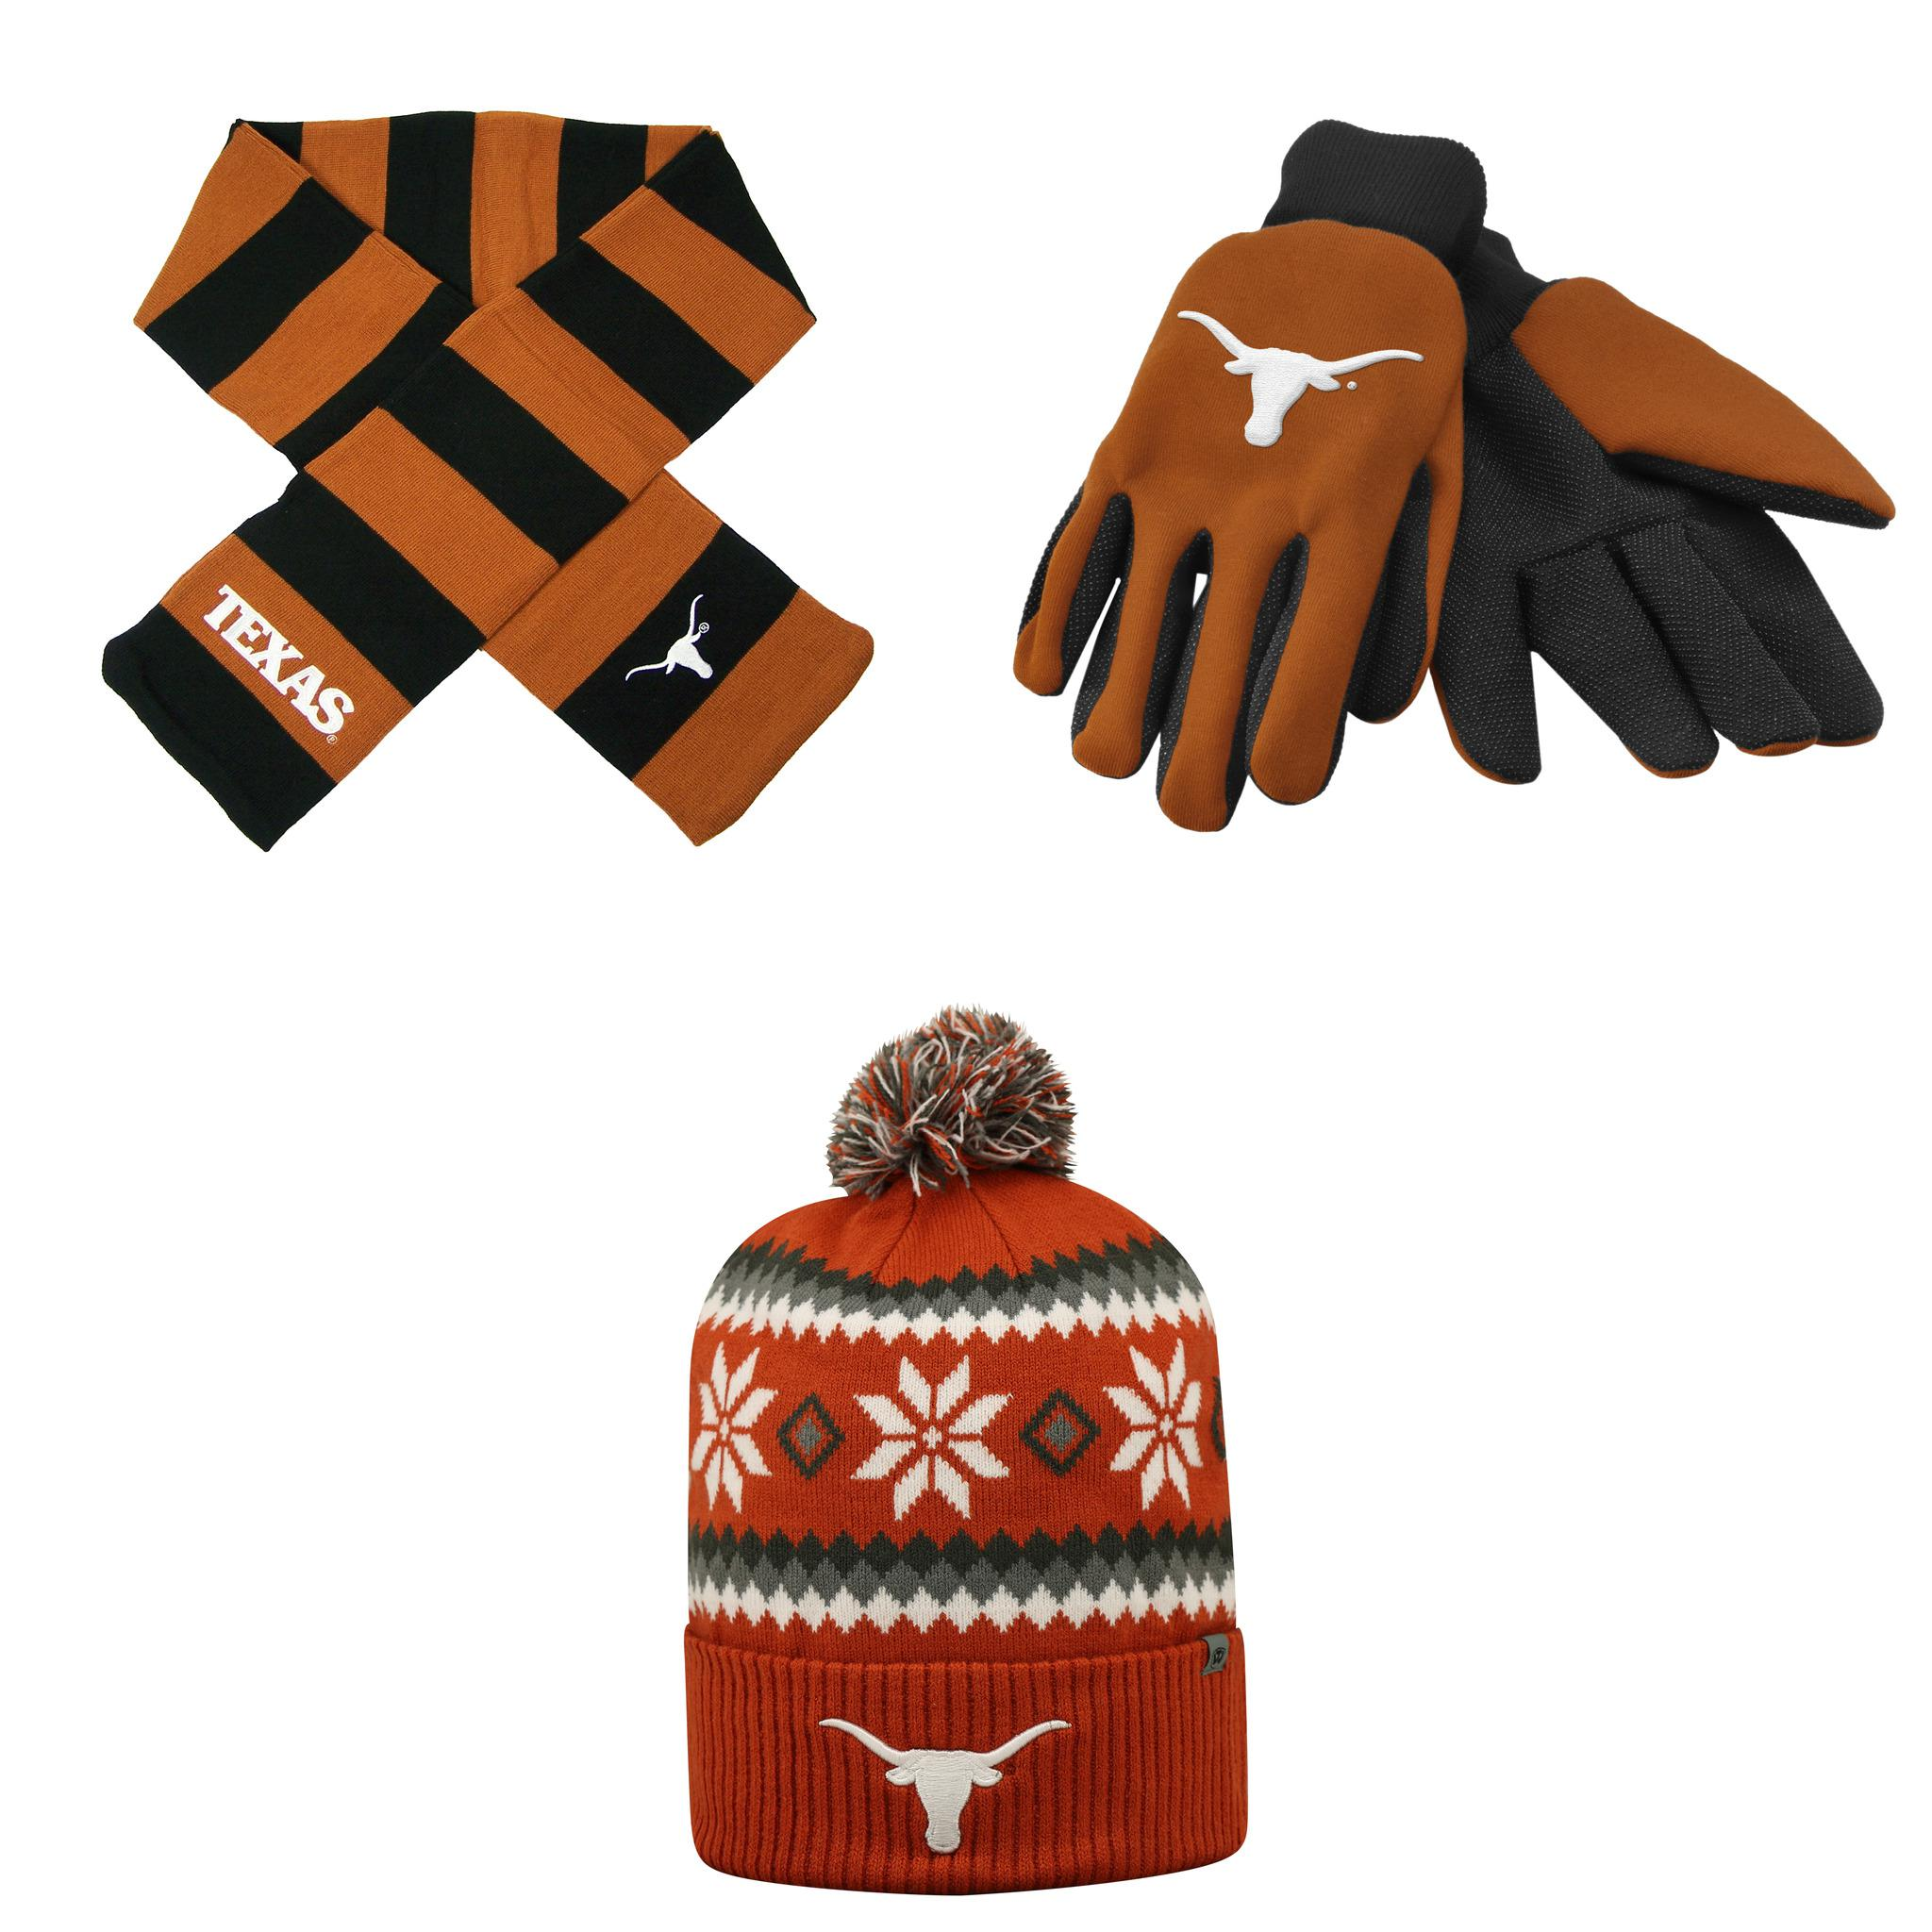 NCAA Texas Longhorns Fogbow Beanie Hat Grip Work Glove And Striped Rugby Scarf 3 Pack Bundle